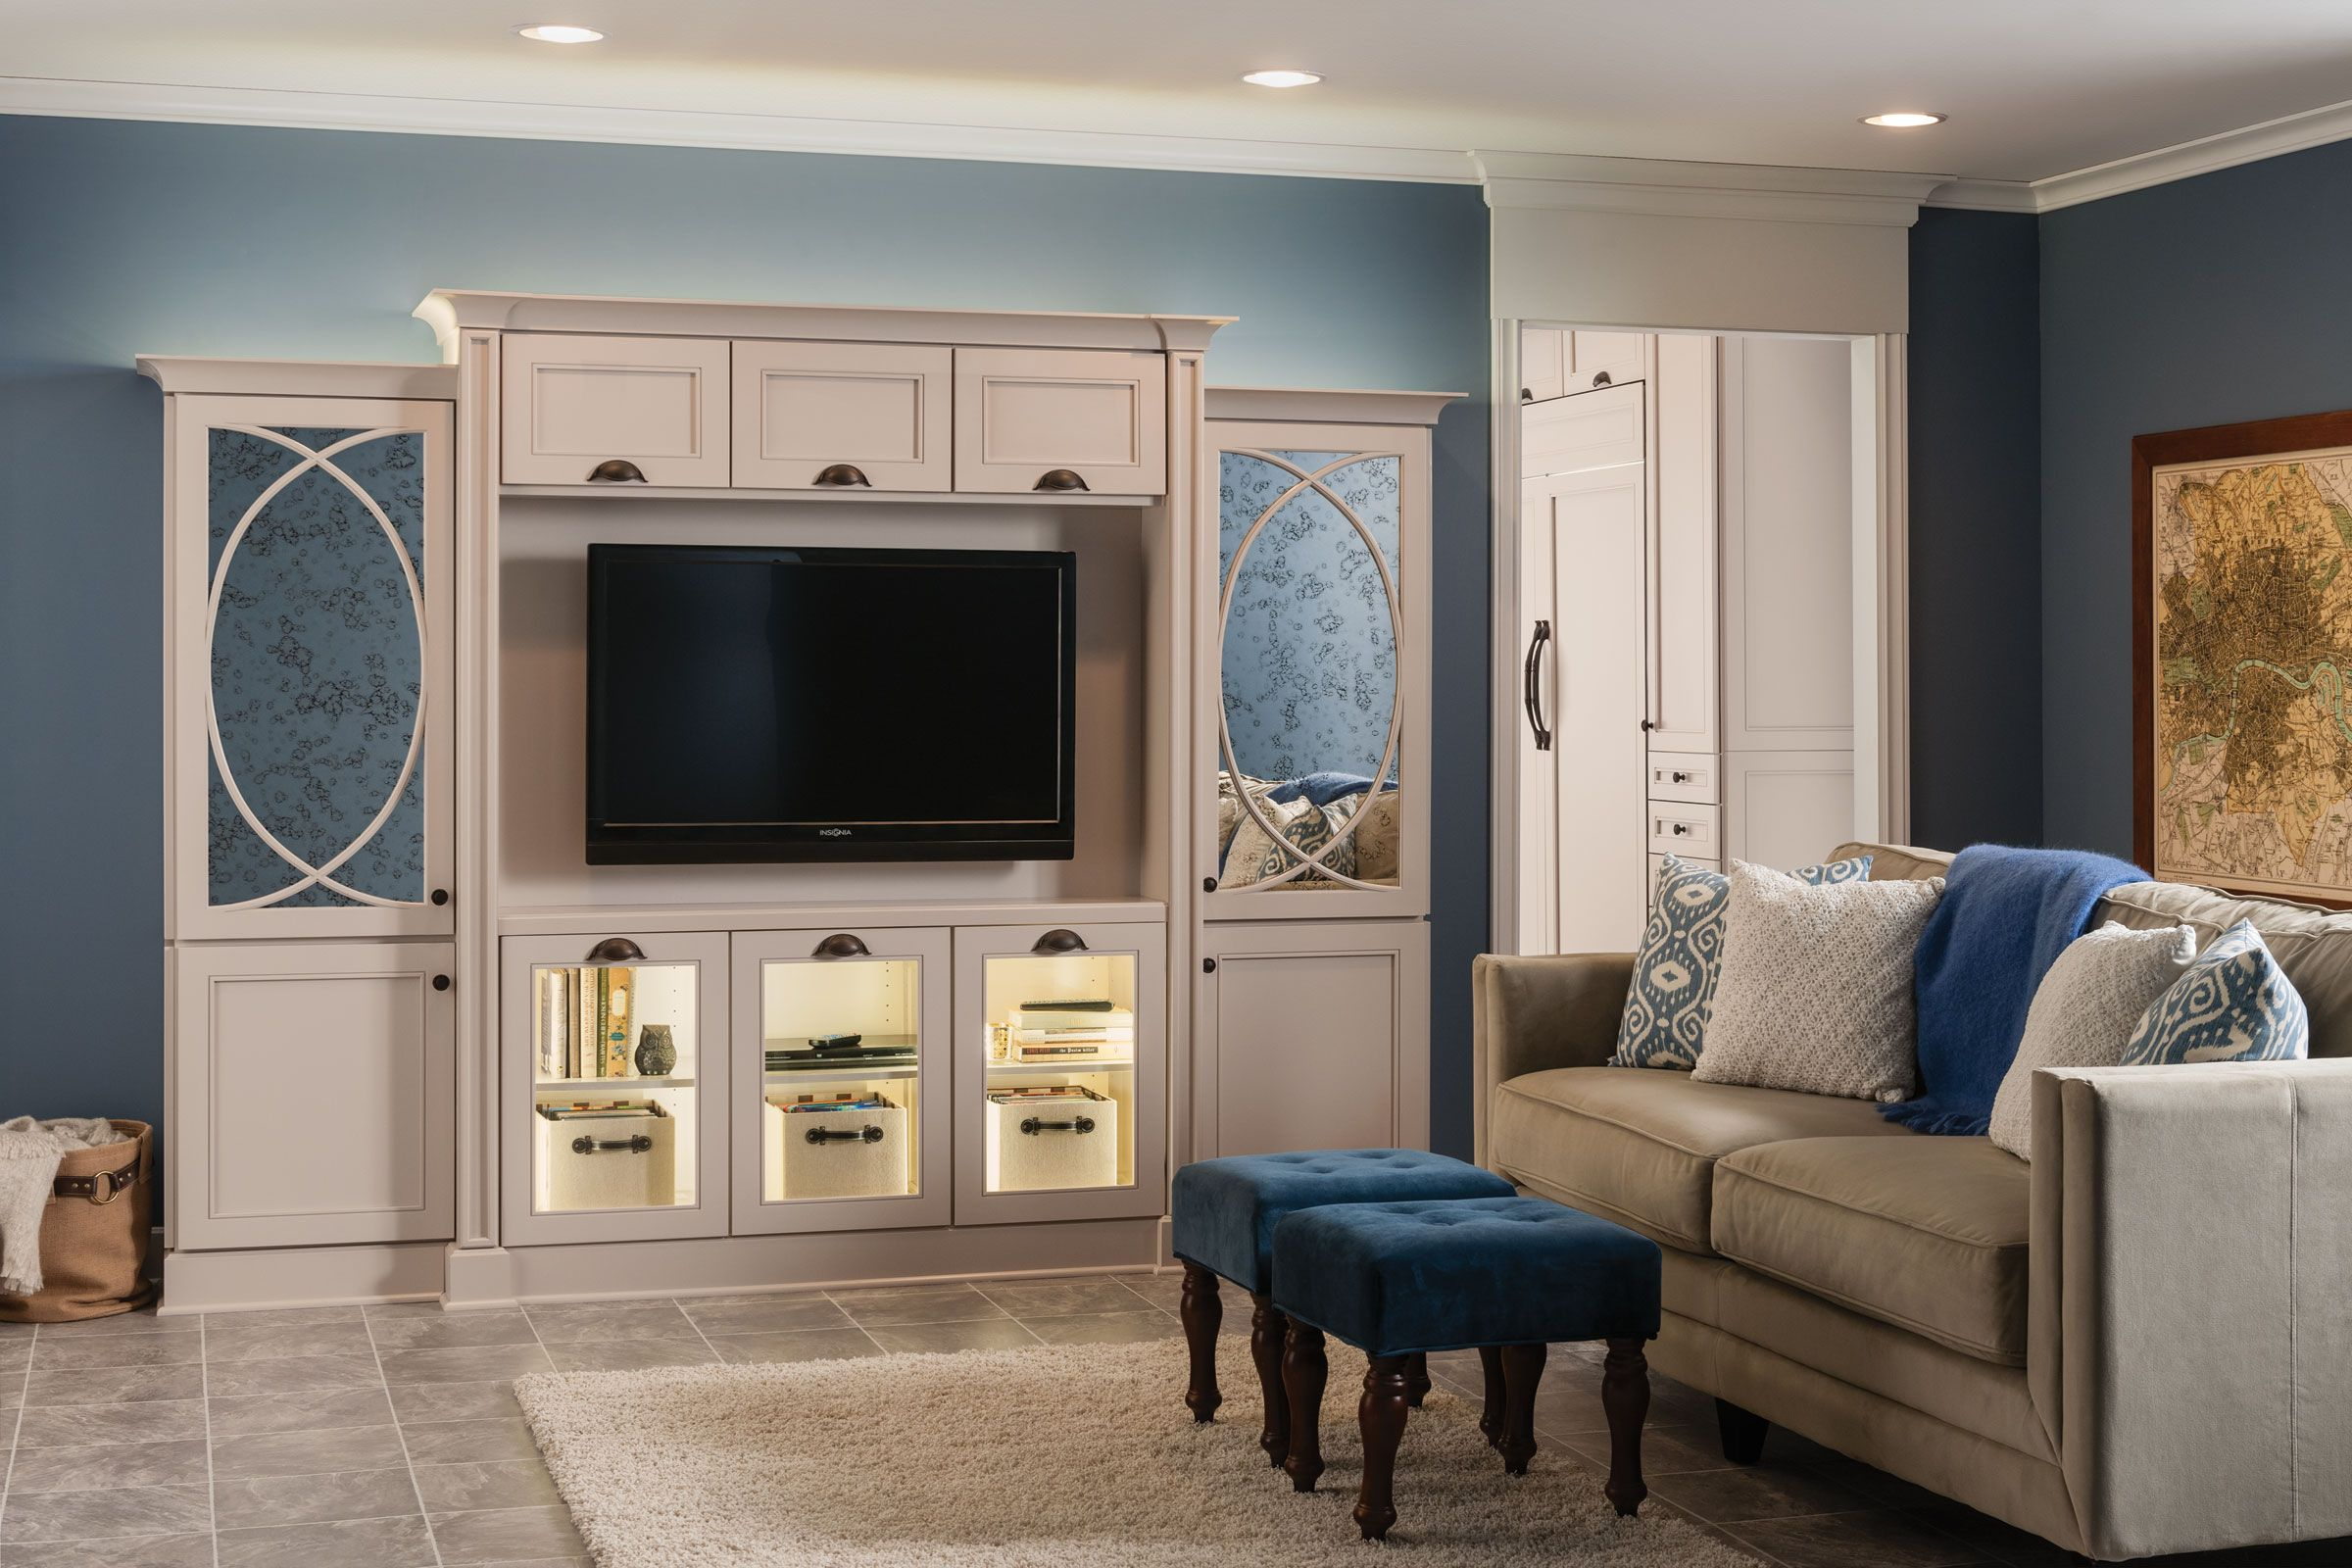 An Entertainment Center Finished In KraftMaids Chai Paint Is The Star Of This Family Room